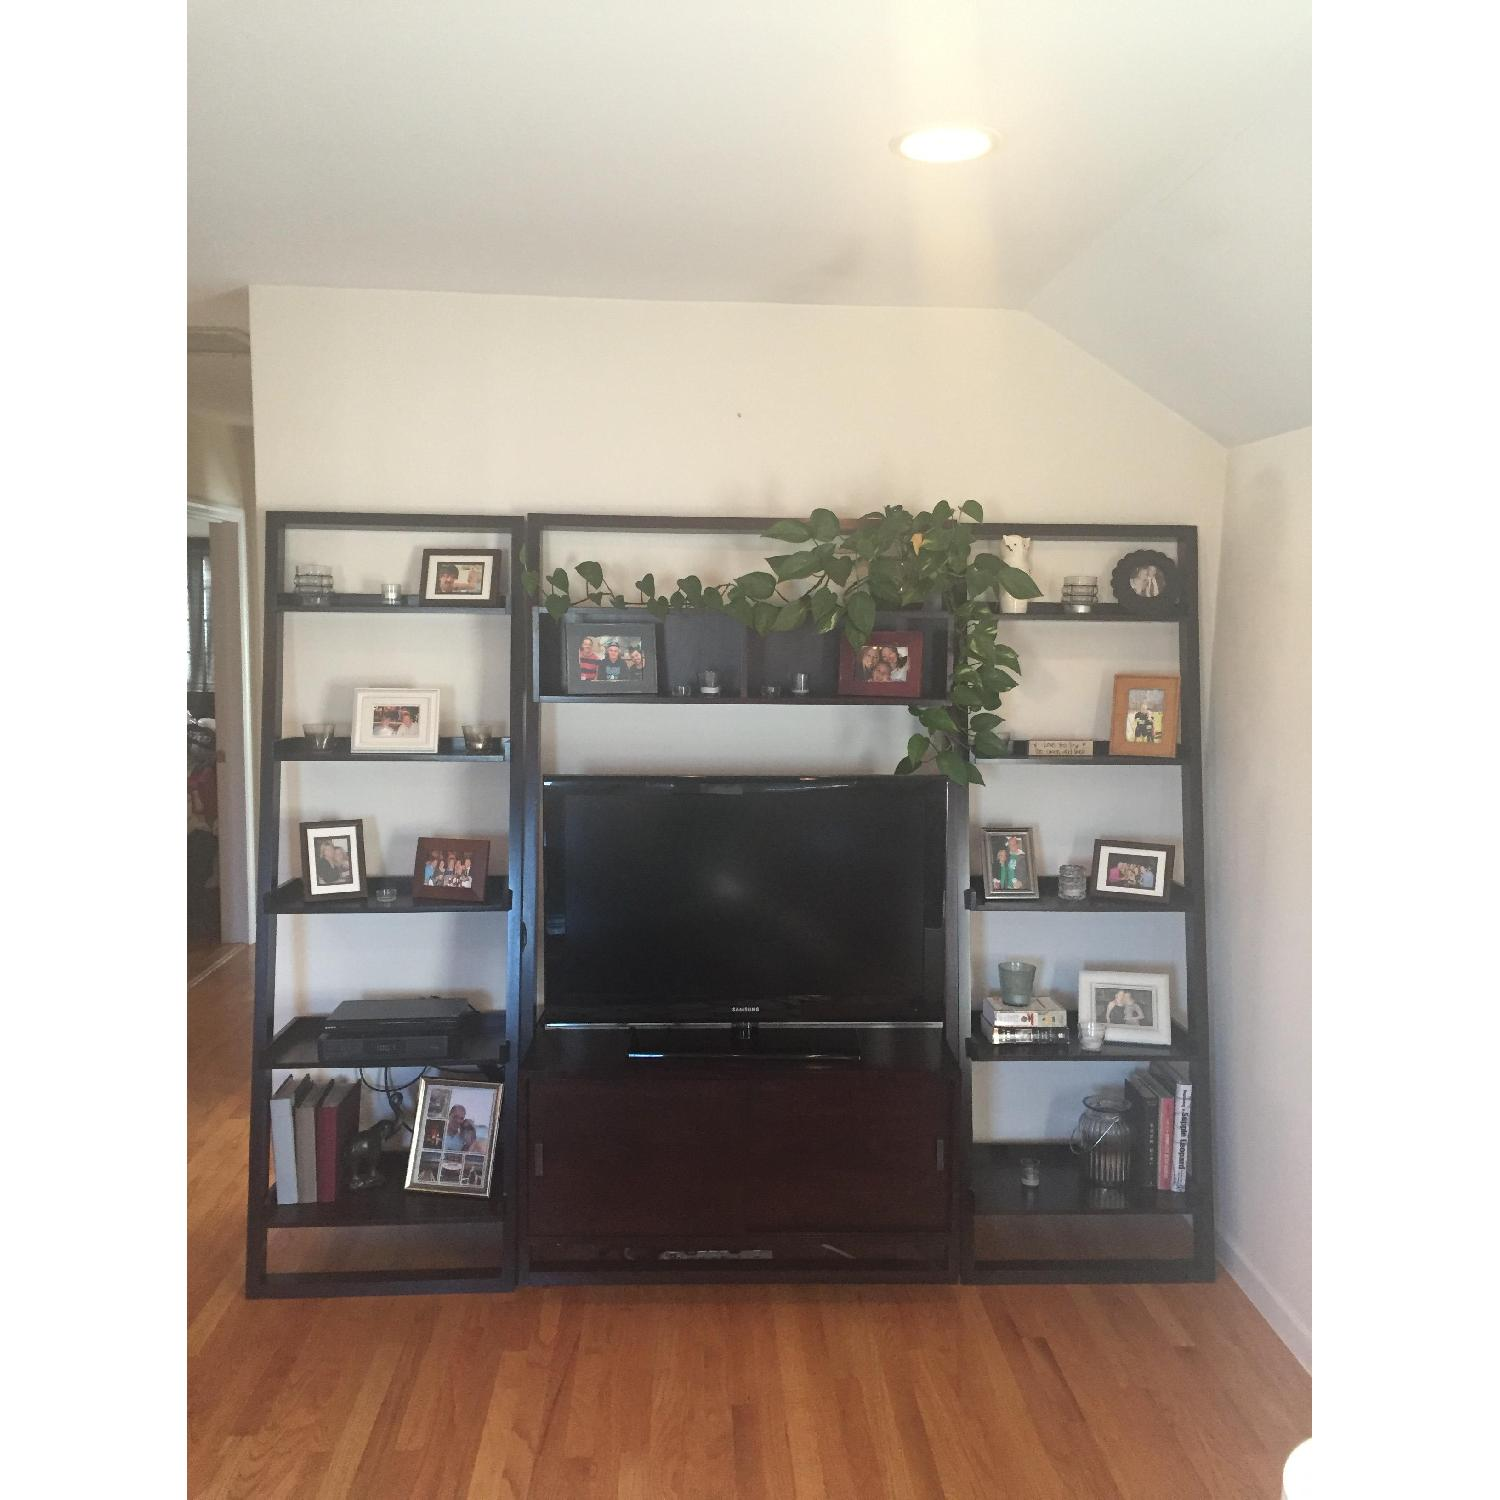 Crate & Barrel TV Stand w /Bookcases - image-1